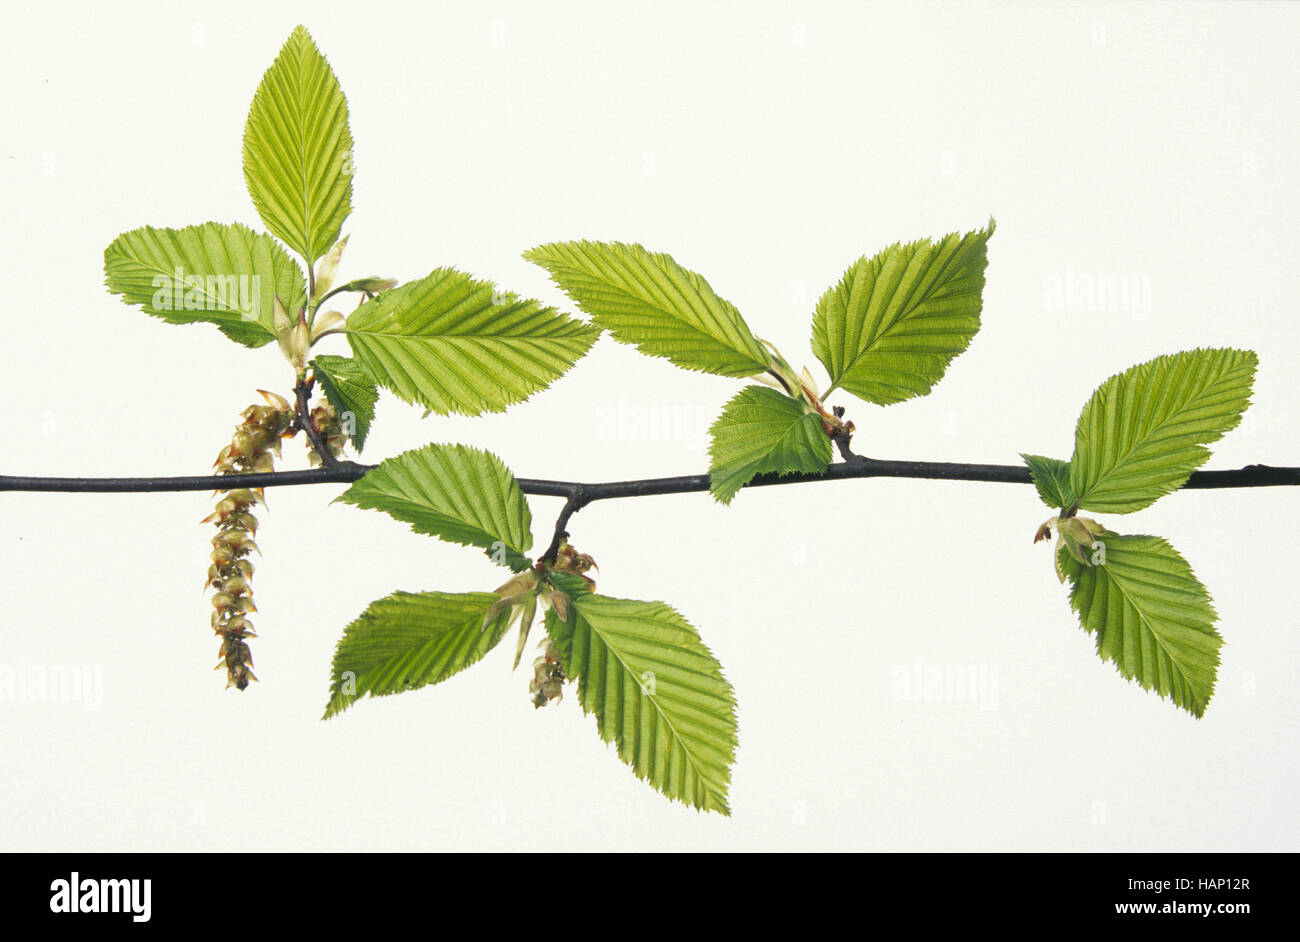 european hornbeam Stock Photo